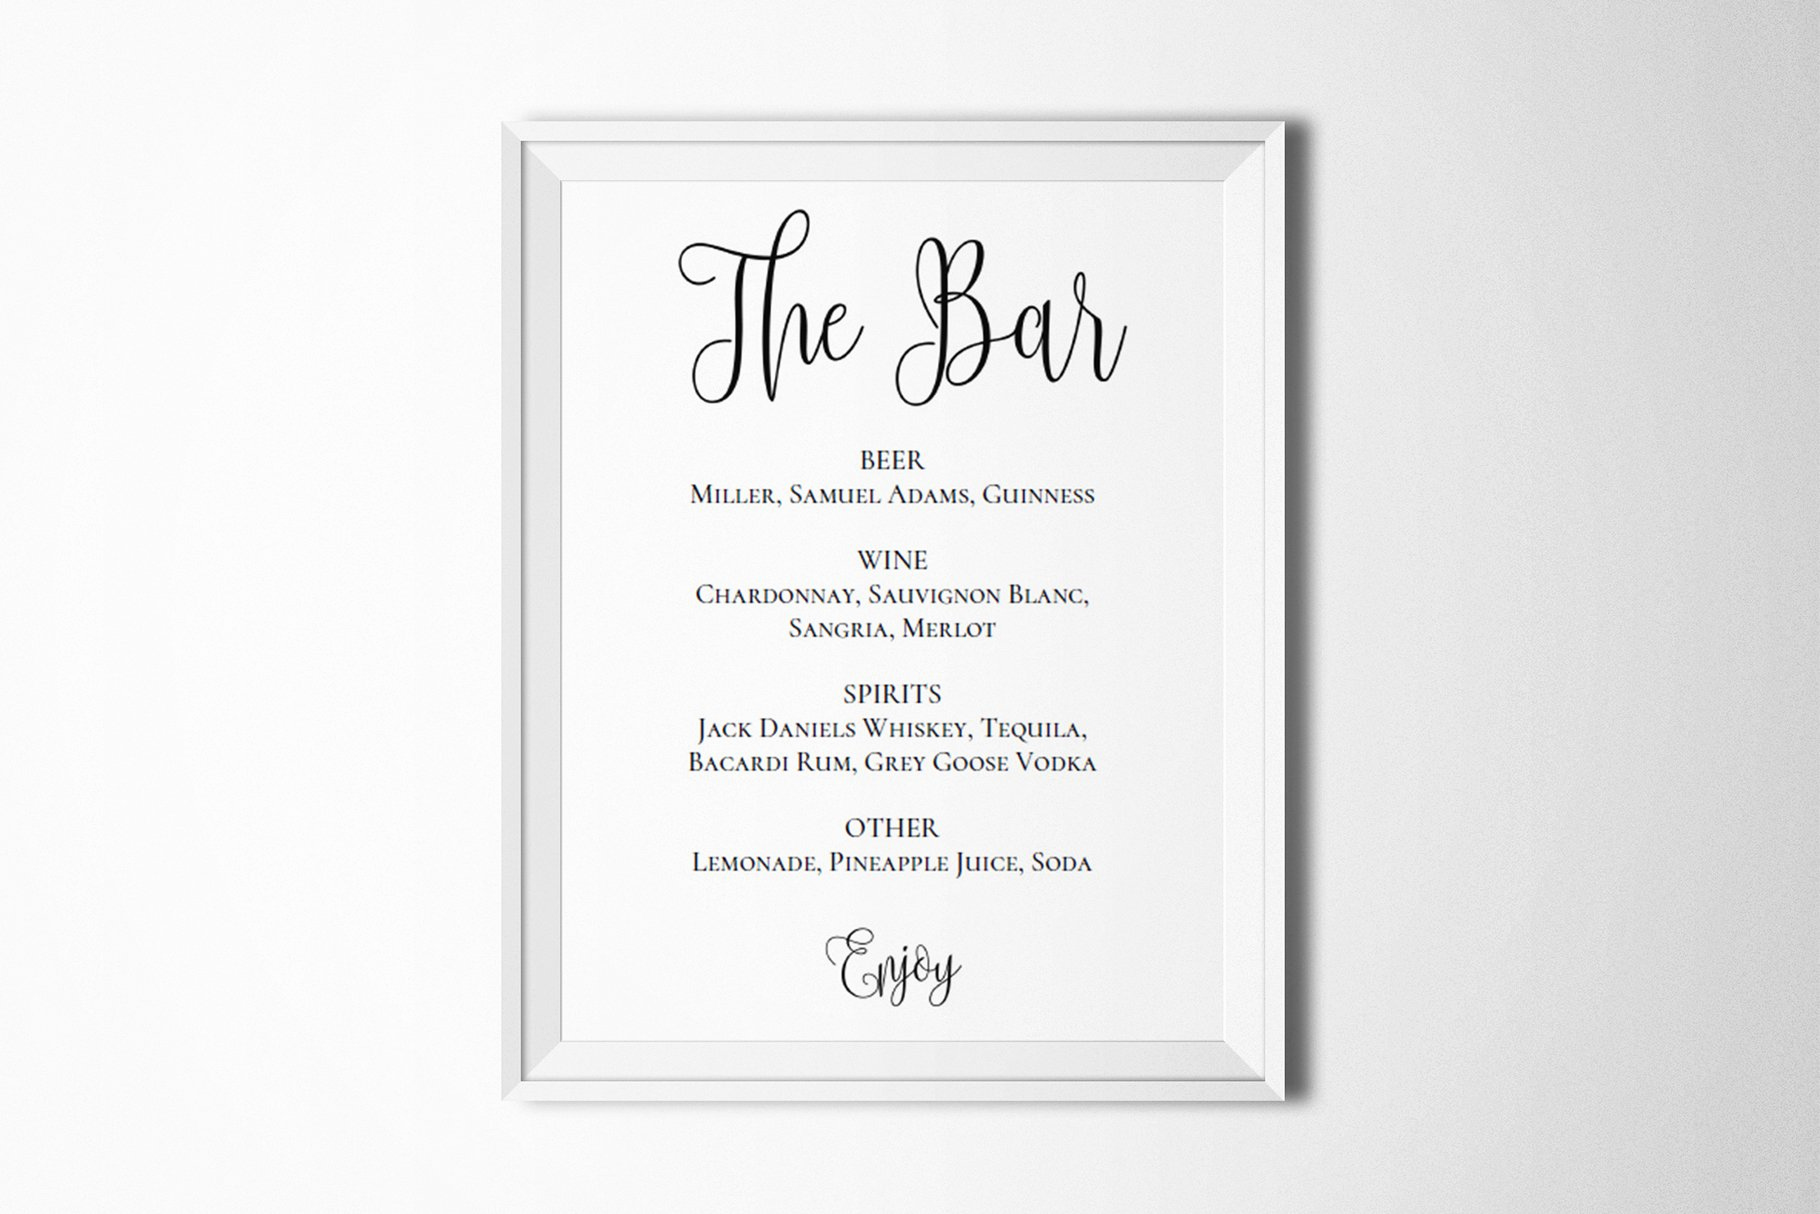 Wedding Drink Menu Template Fresh Wedding Bar Menu Template Drink Sign